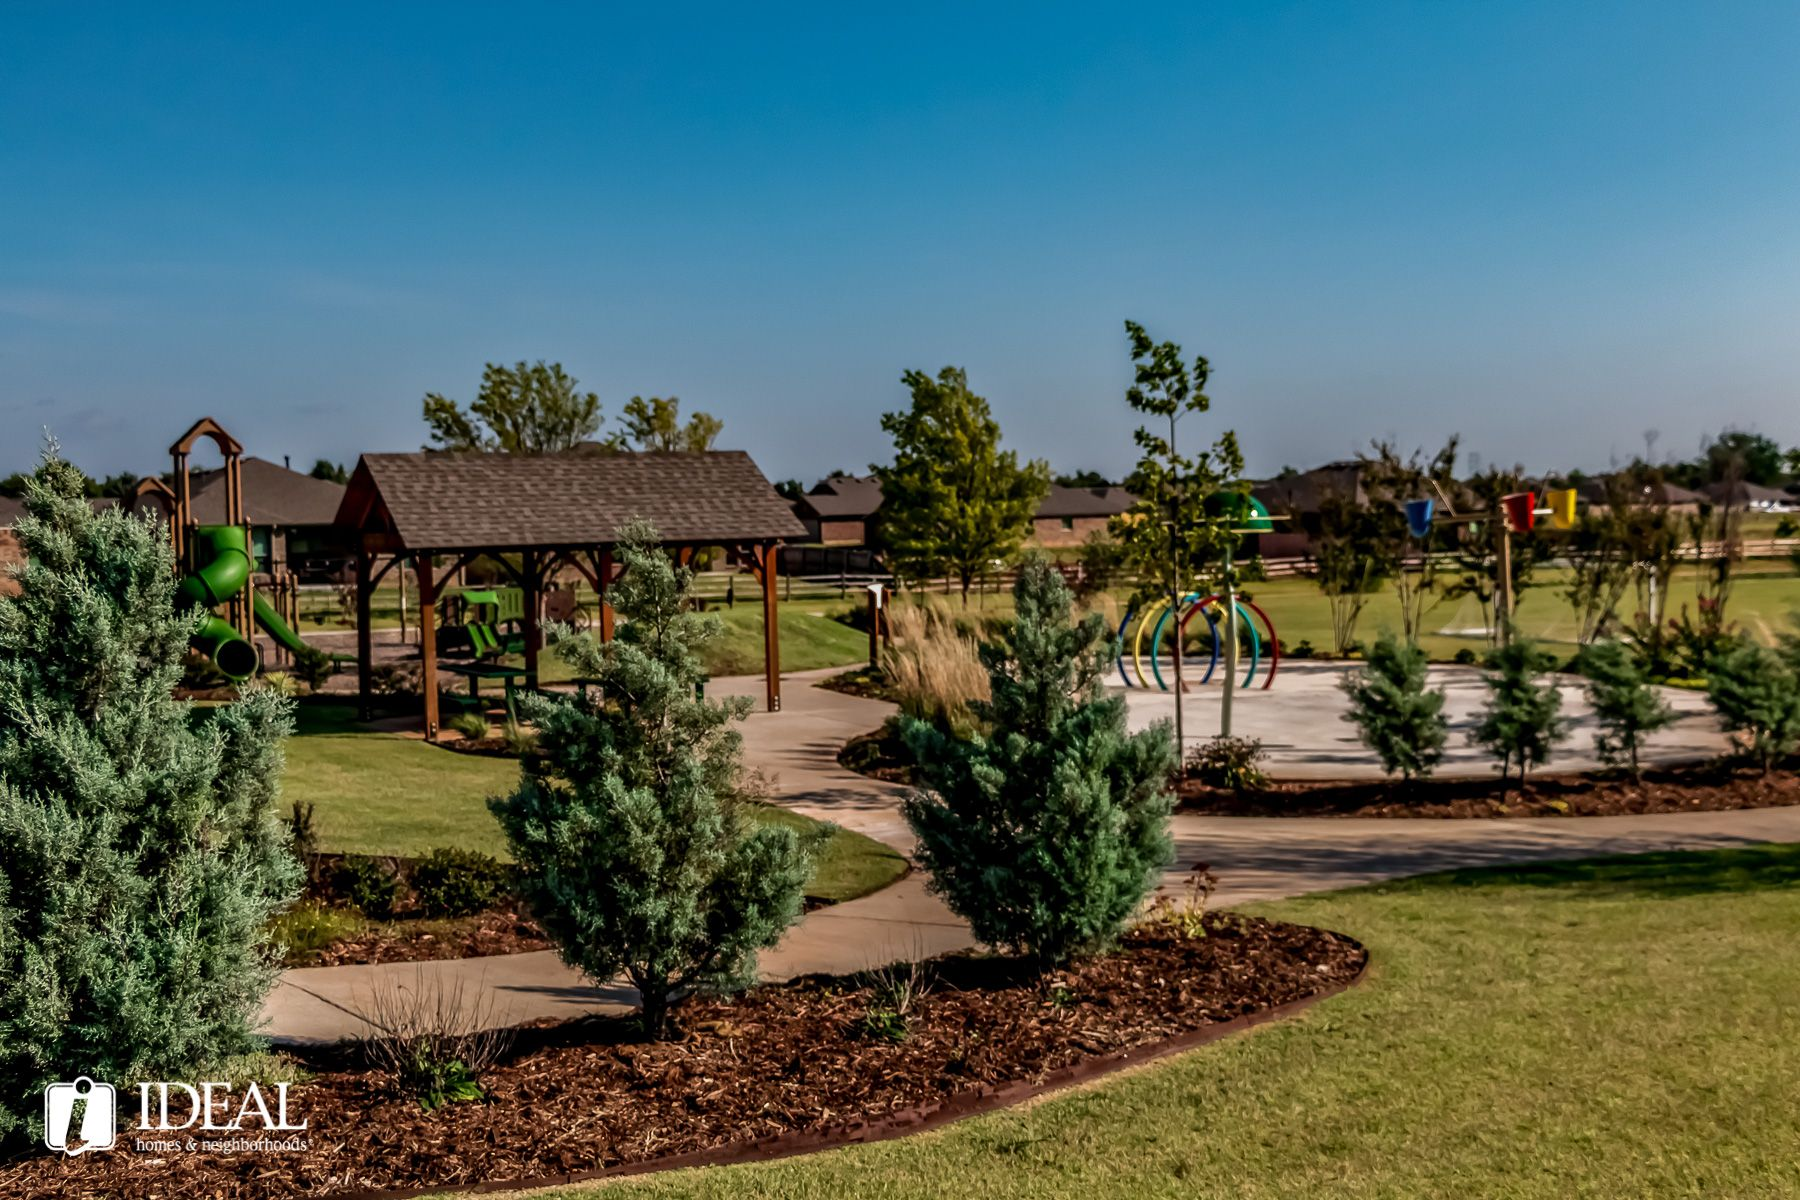 'Castlewood Trails' by Ideal Homes in Oklahoma City